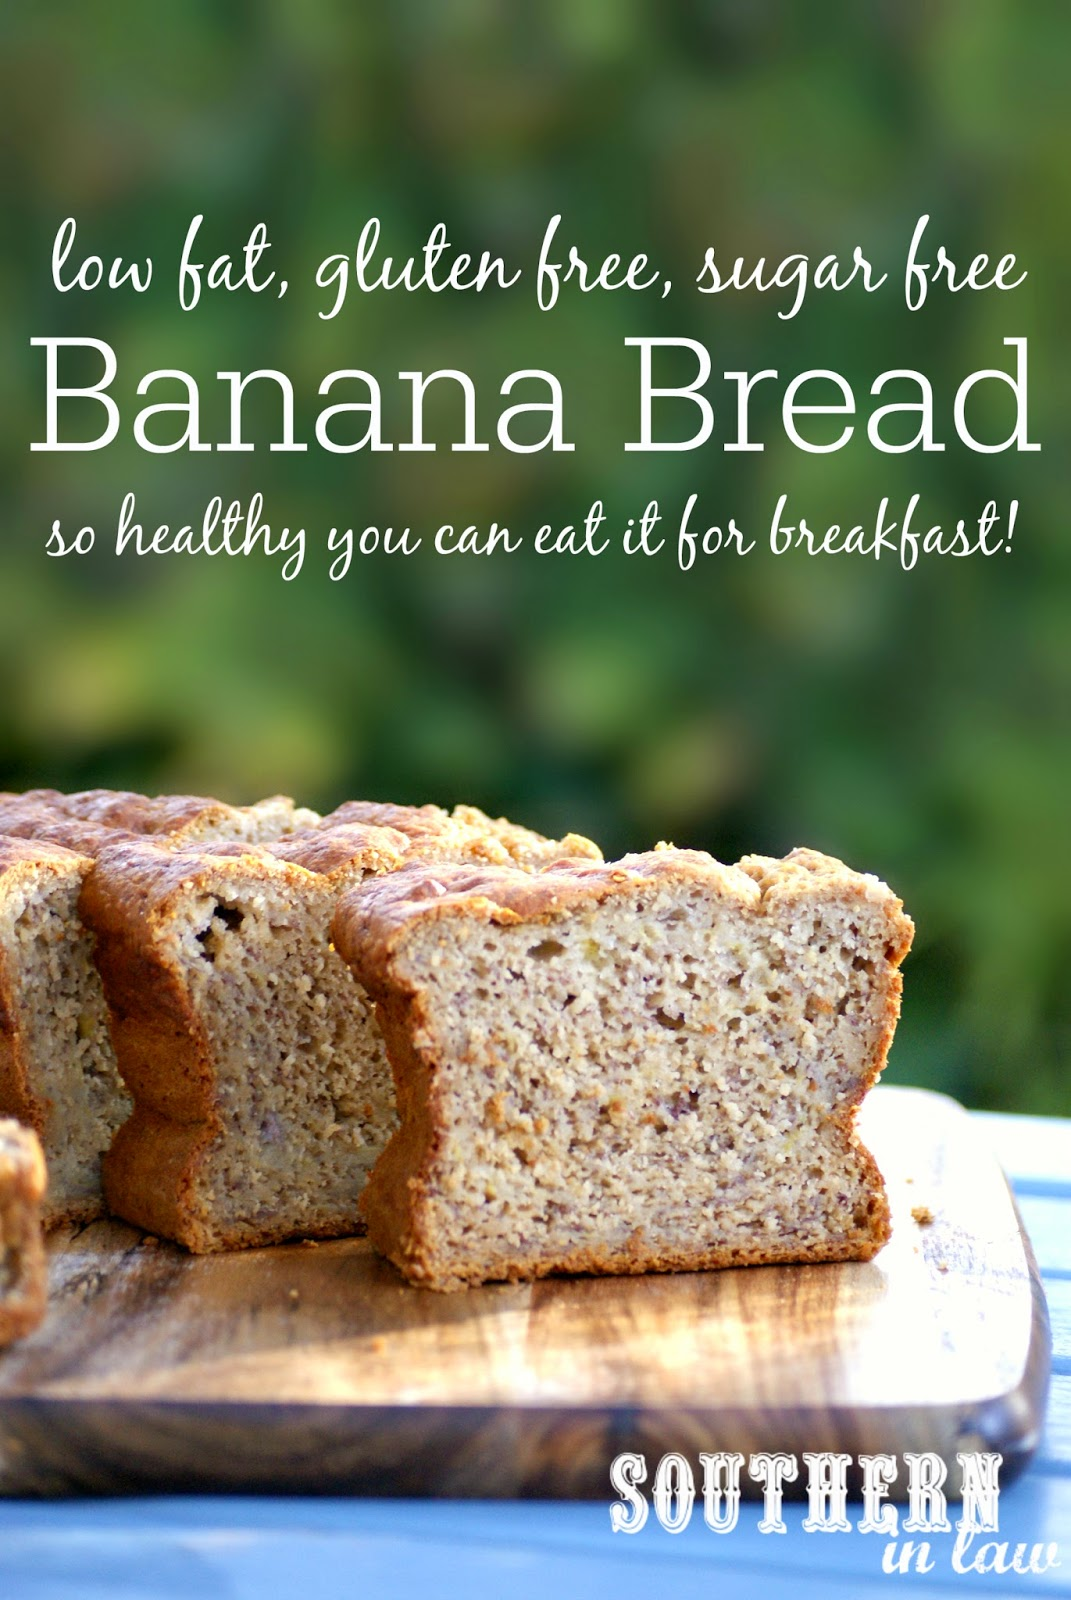 Southern in law recipe the best healthy banana bread low fat banana bread recipe low fat gluten free low calories sugar forumfinder Images